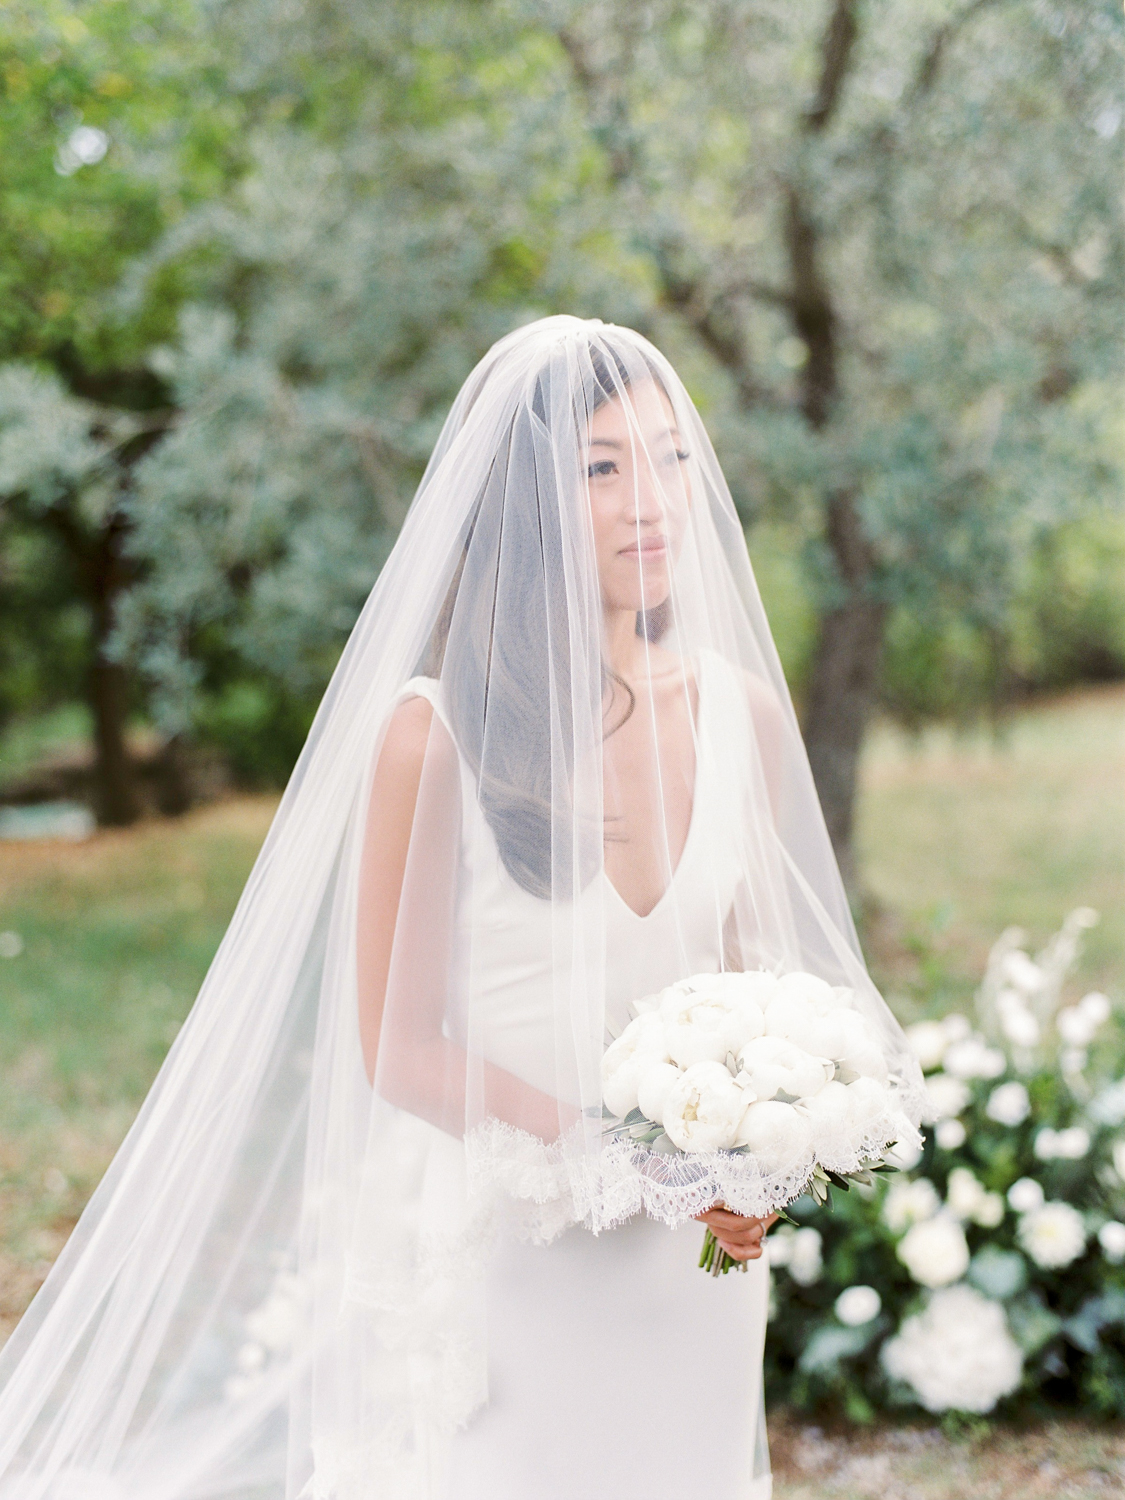 bride wear a simple white veil